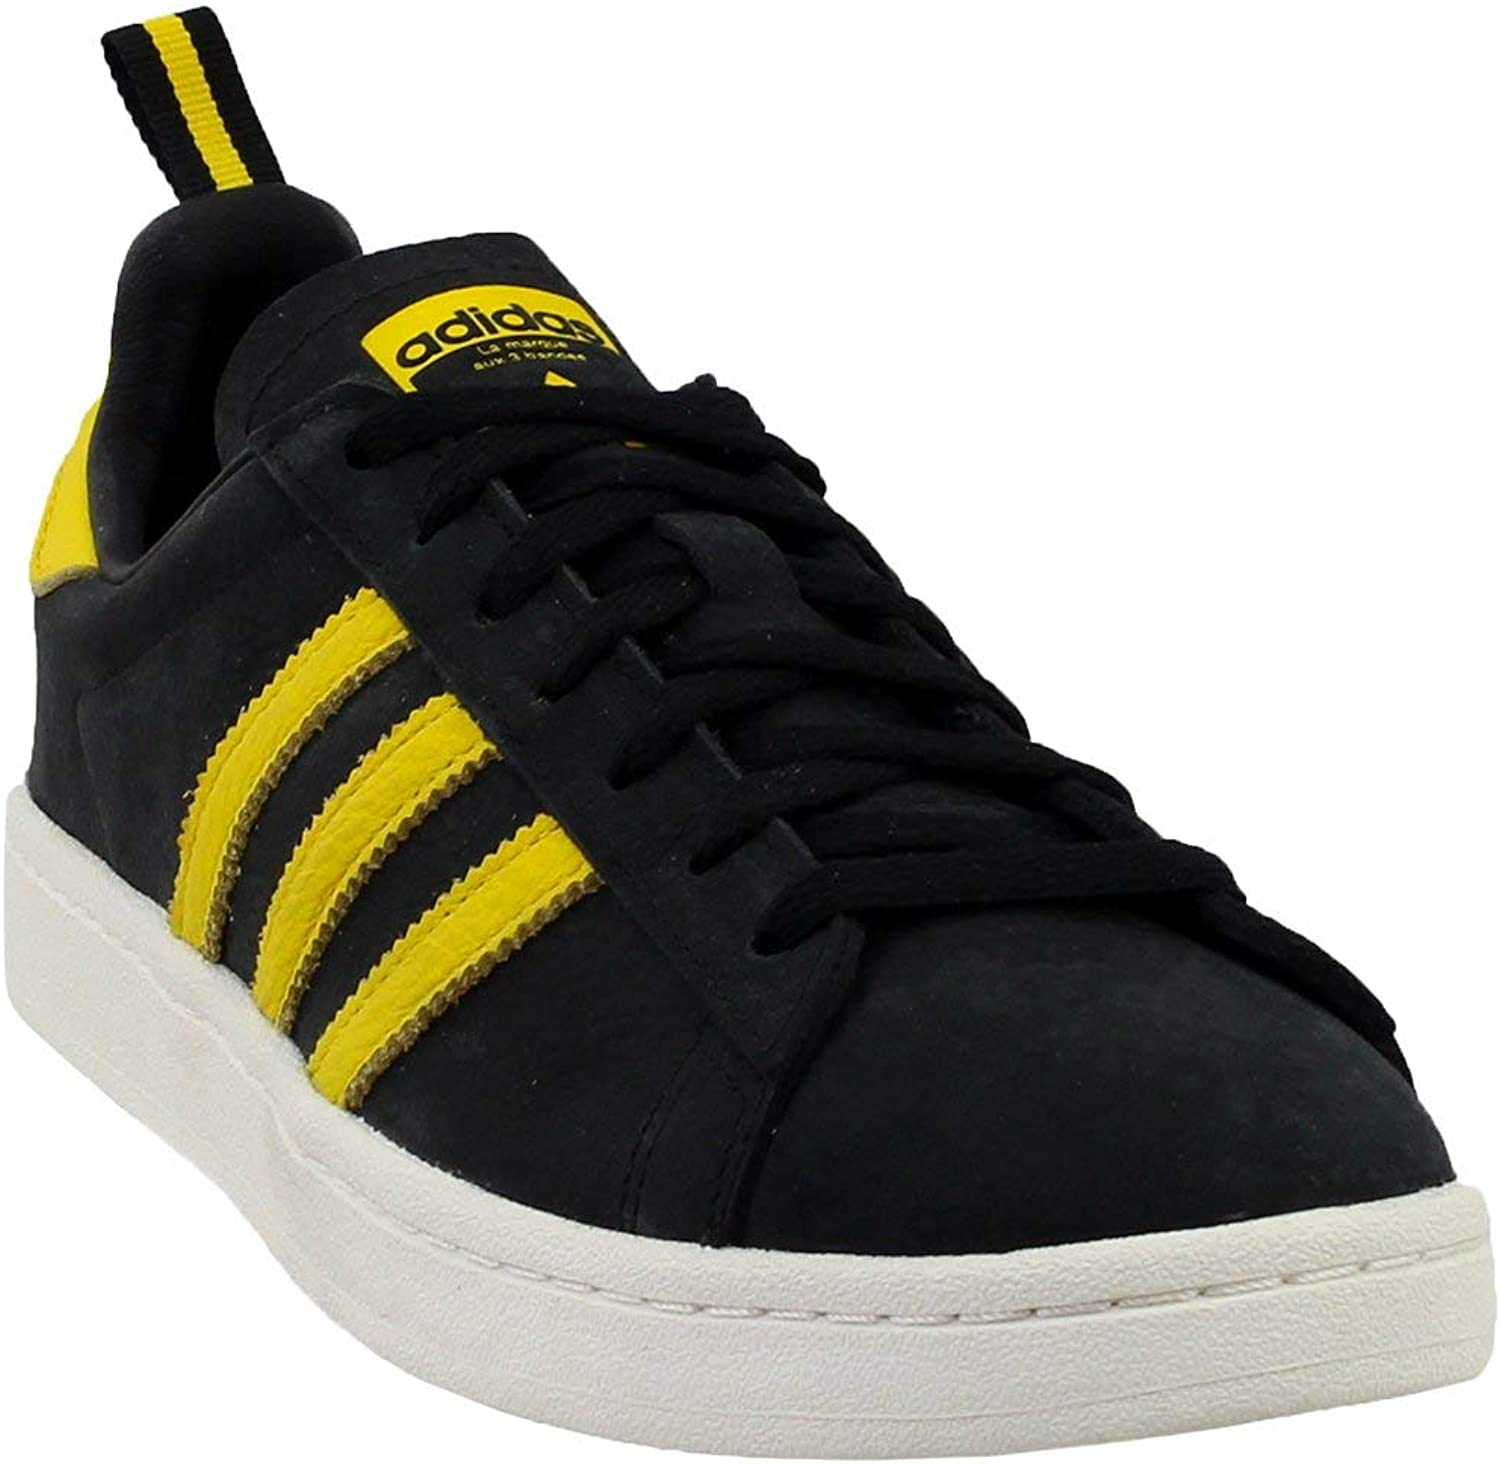 Adidas Mens Campus Casual Athletic & Sneakers